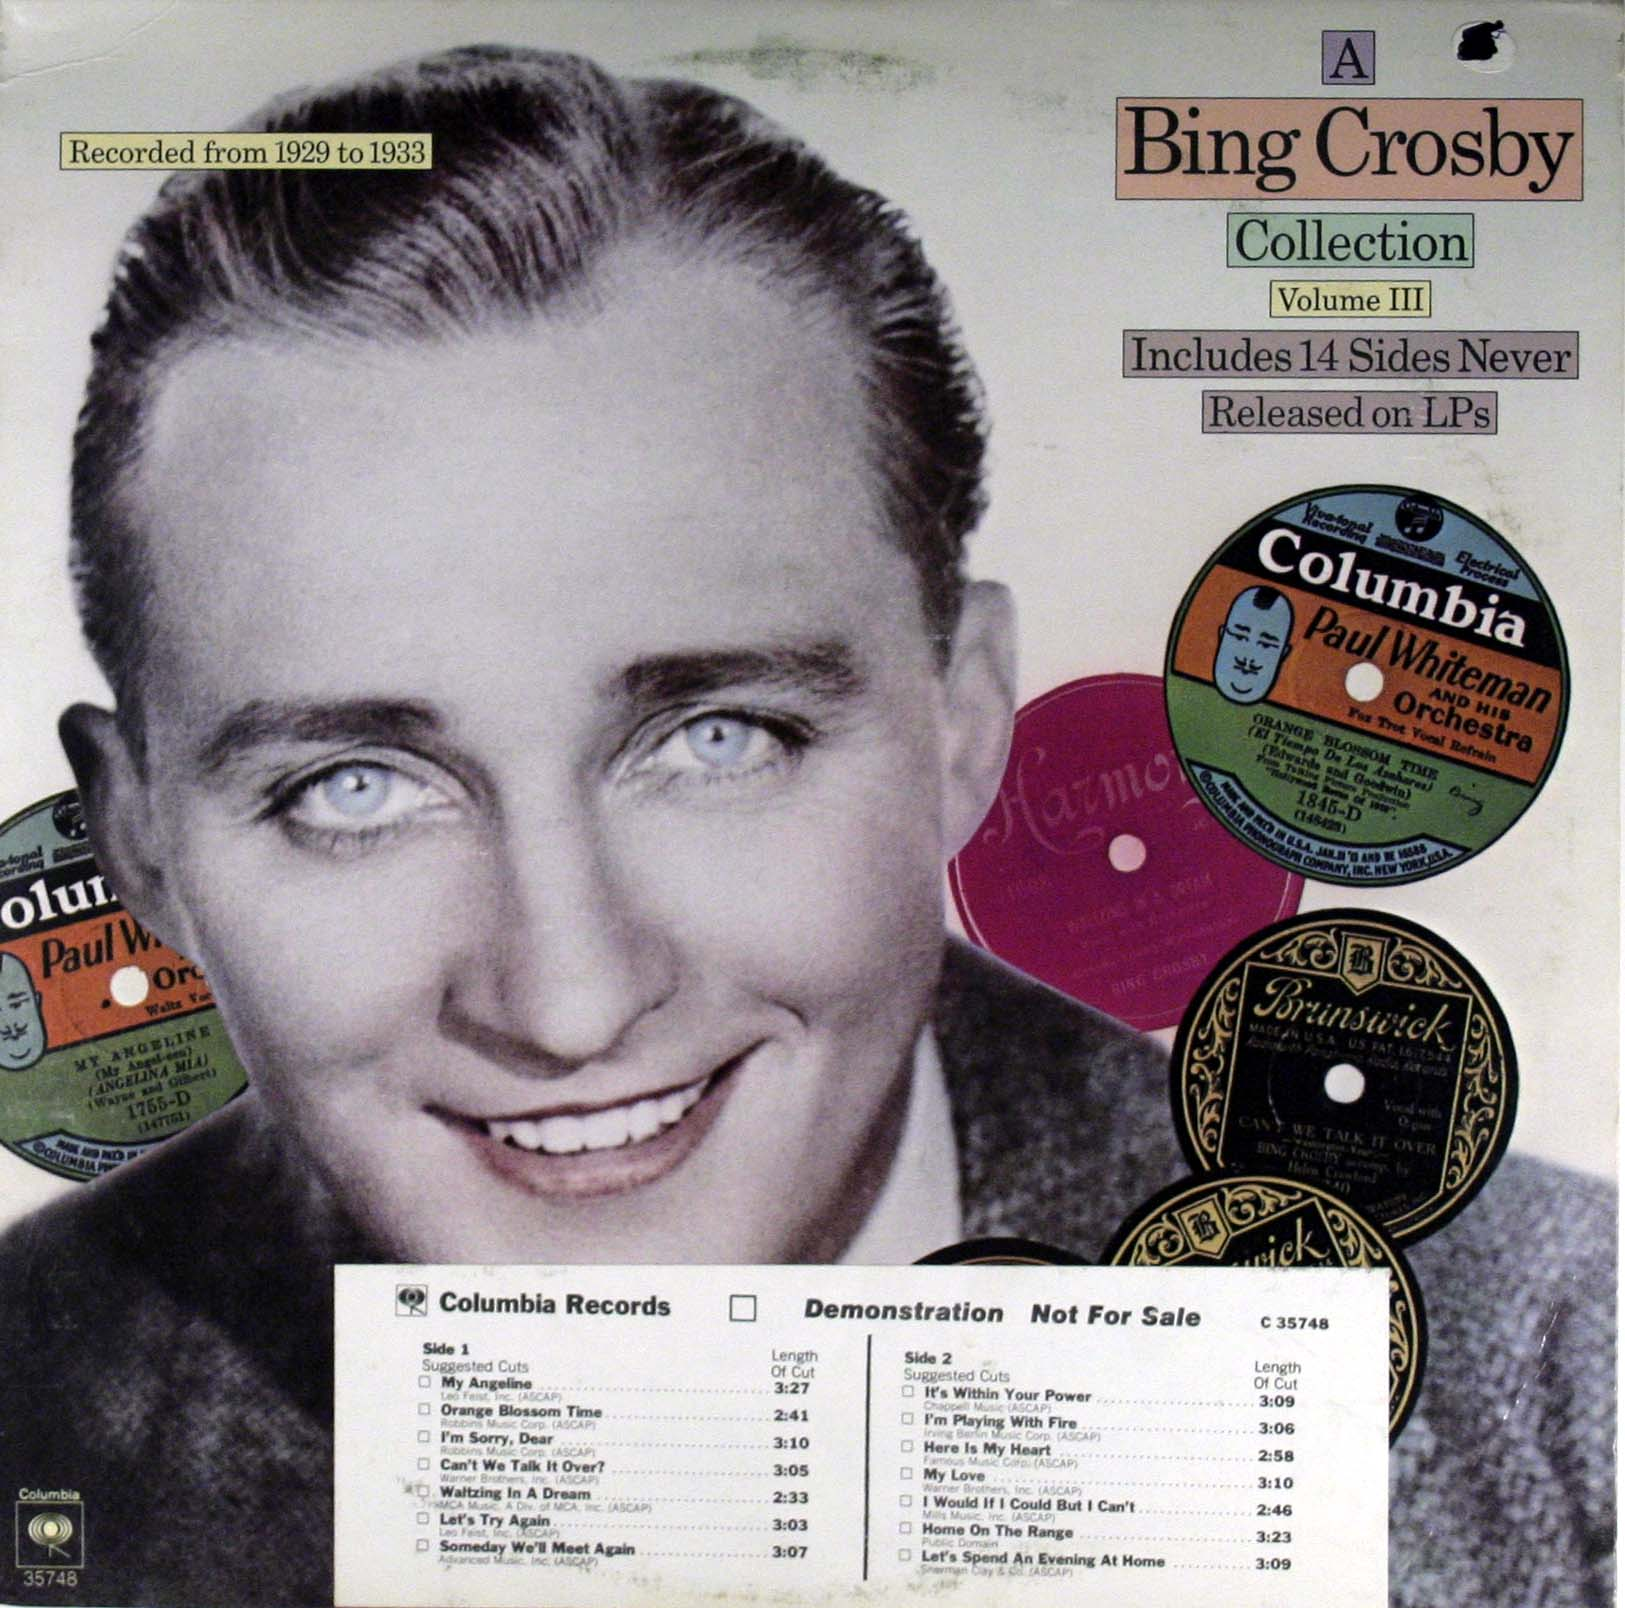 A Bing Crosby Collection